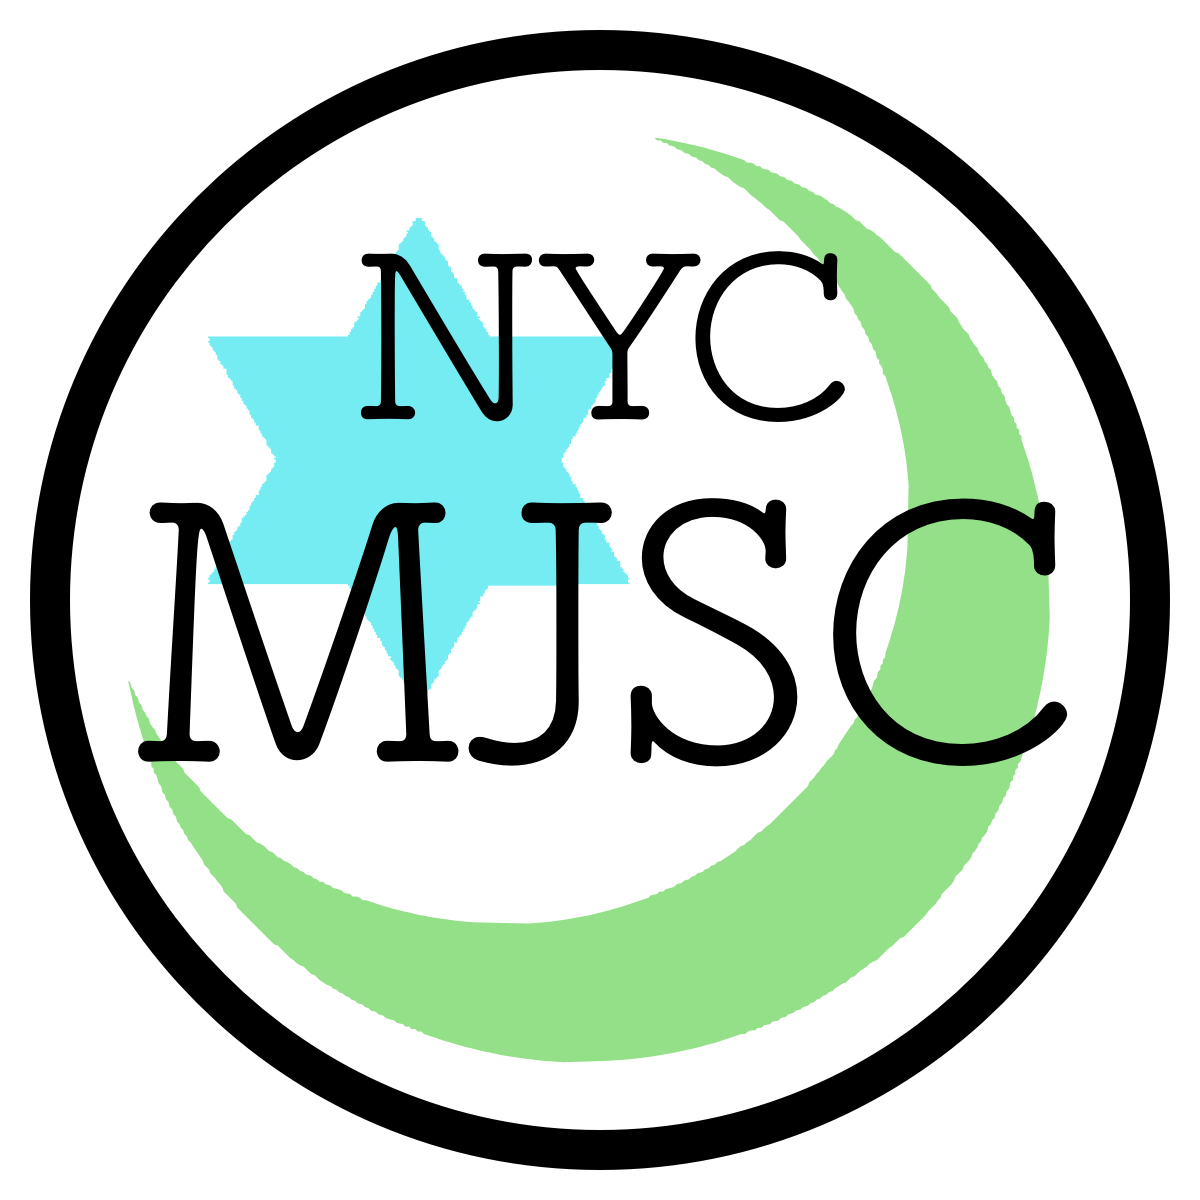 NYC_MJSC.png